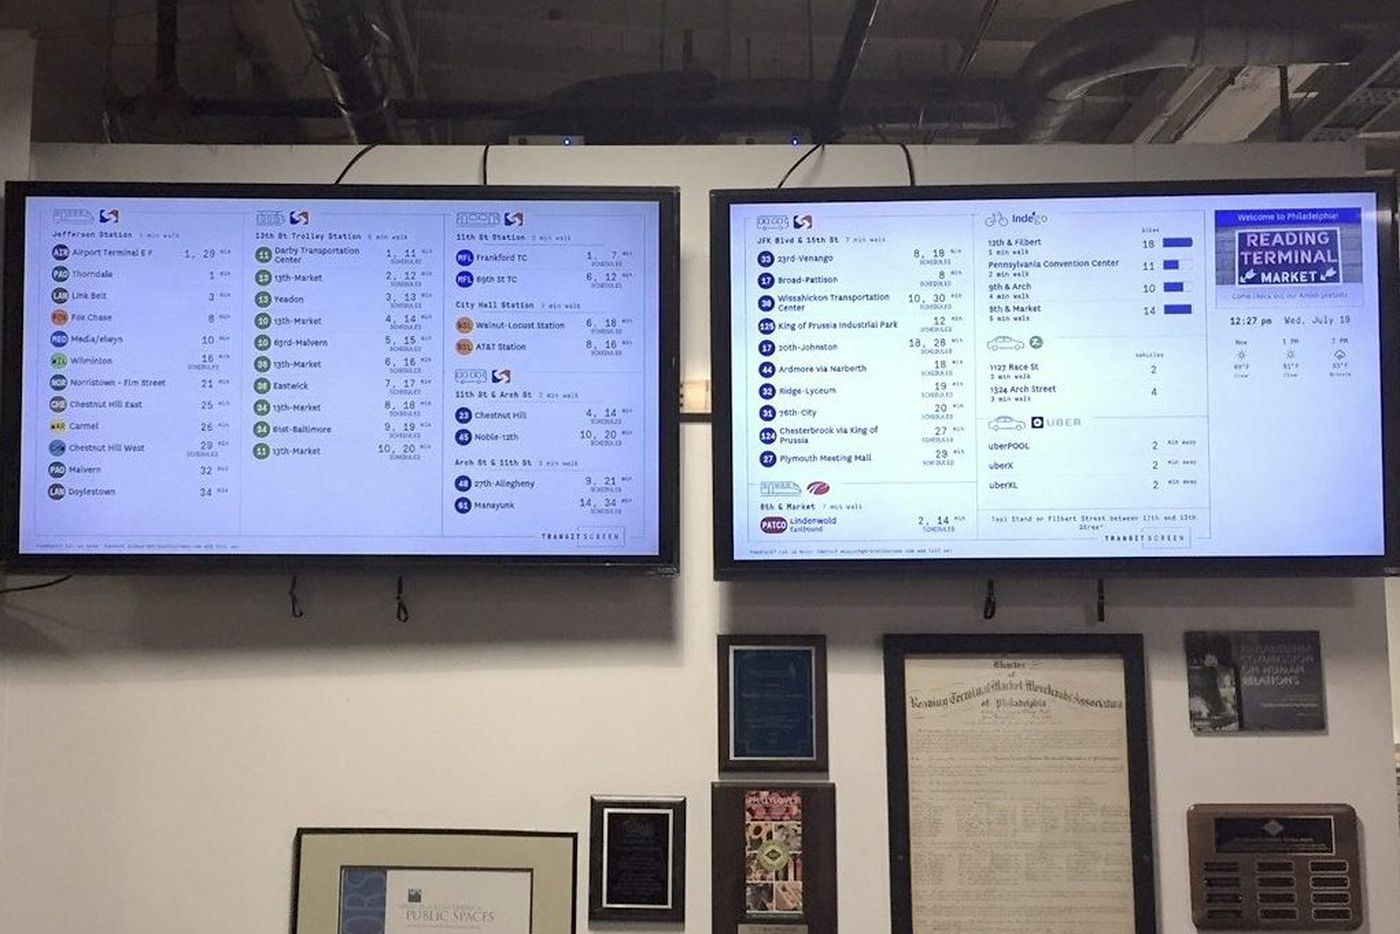 Real-time transit info now available at Reading Terminal Market